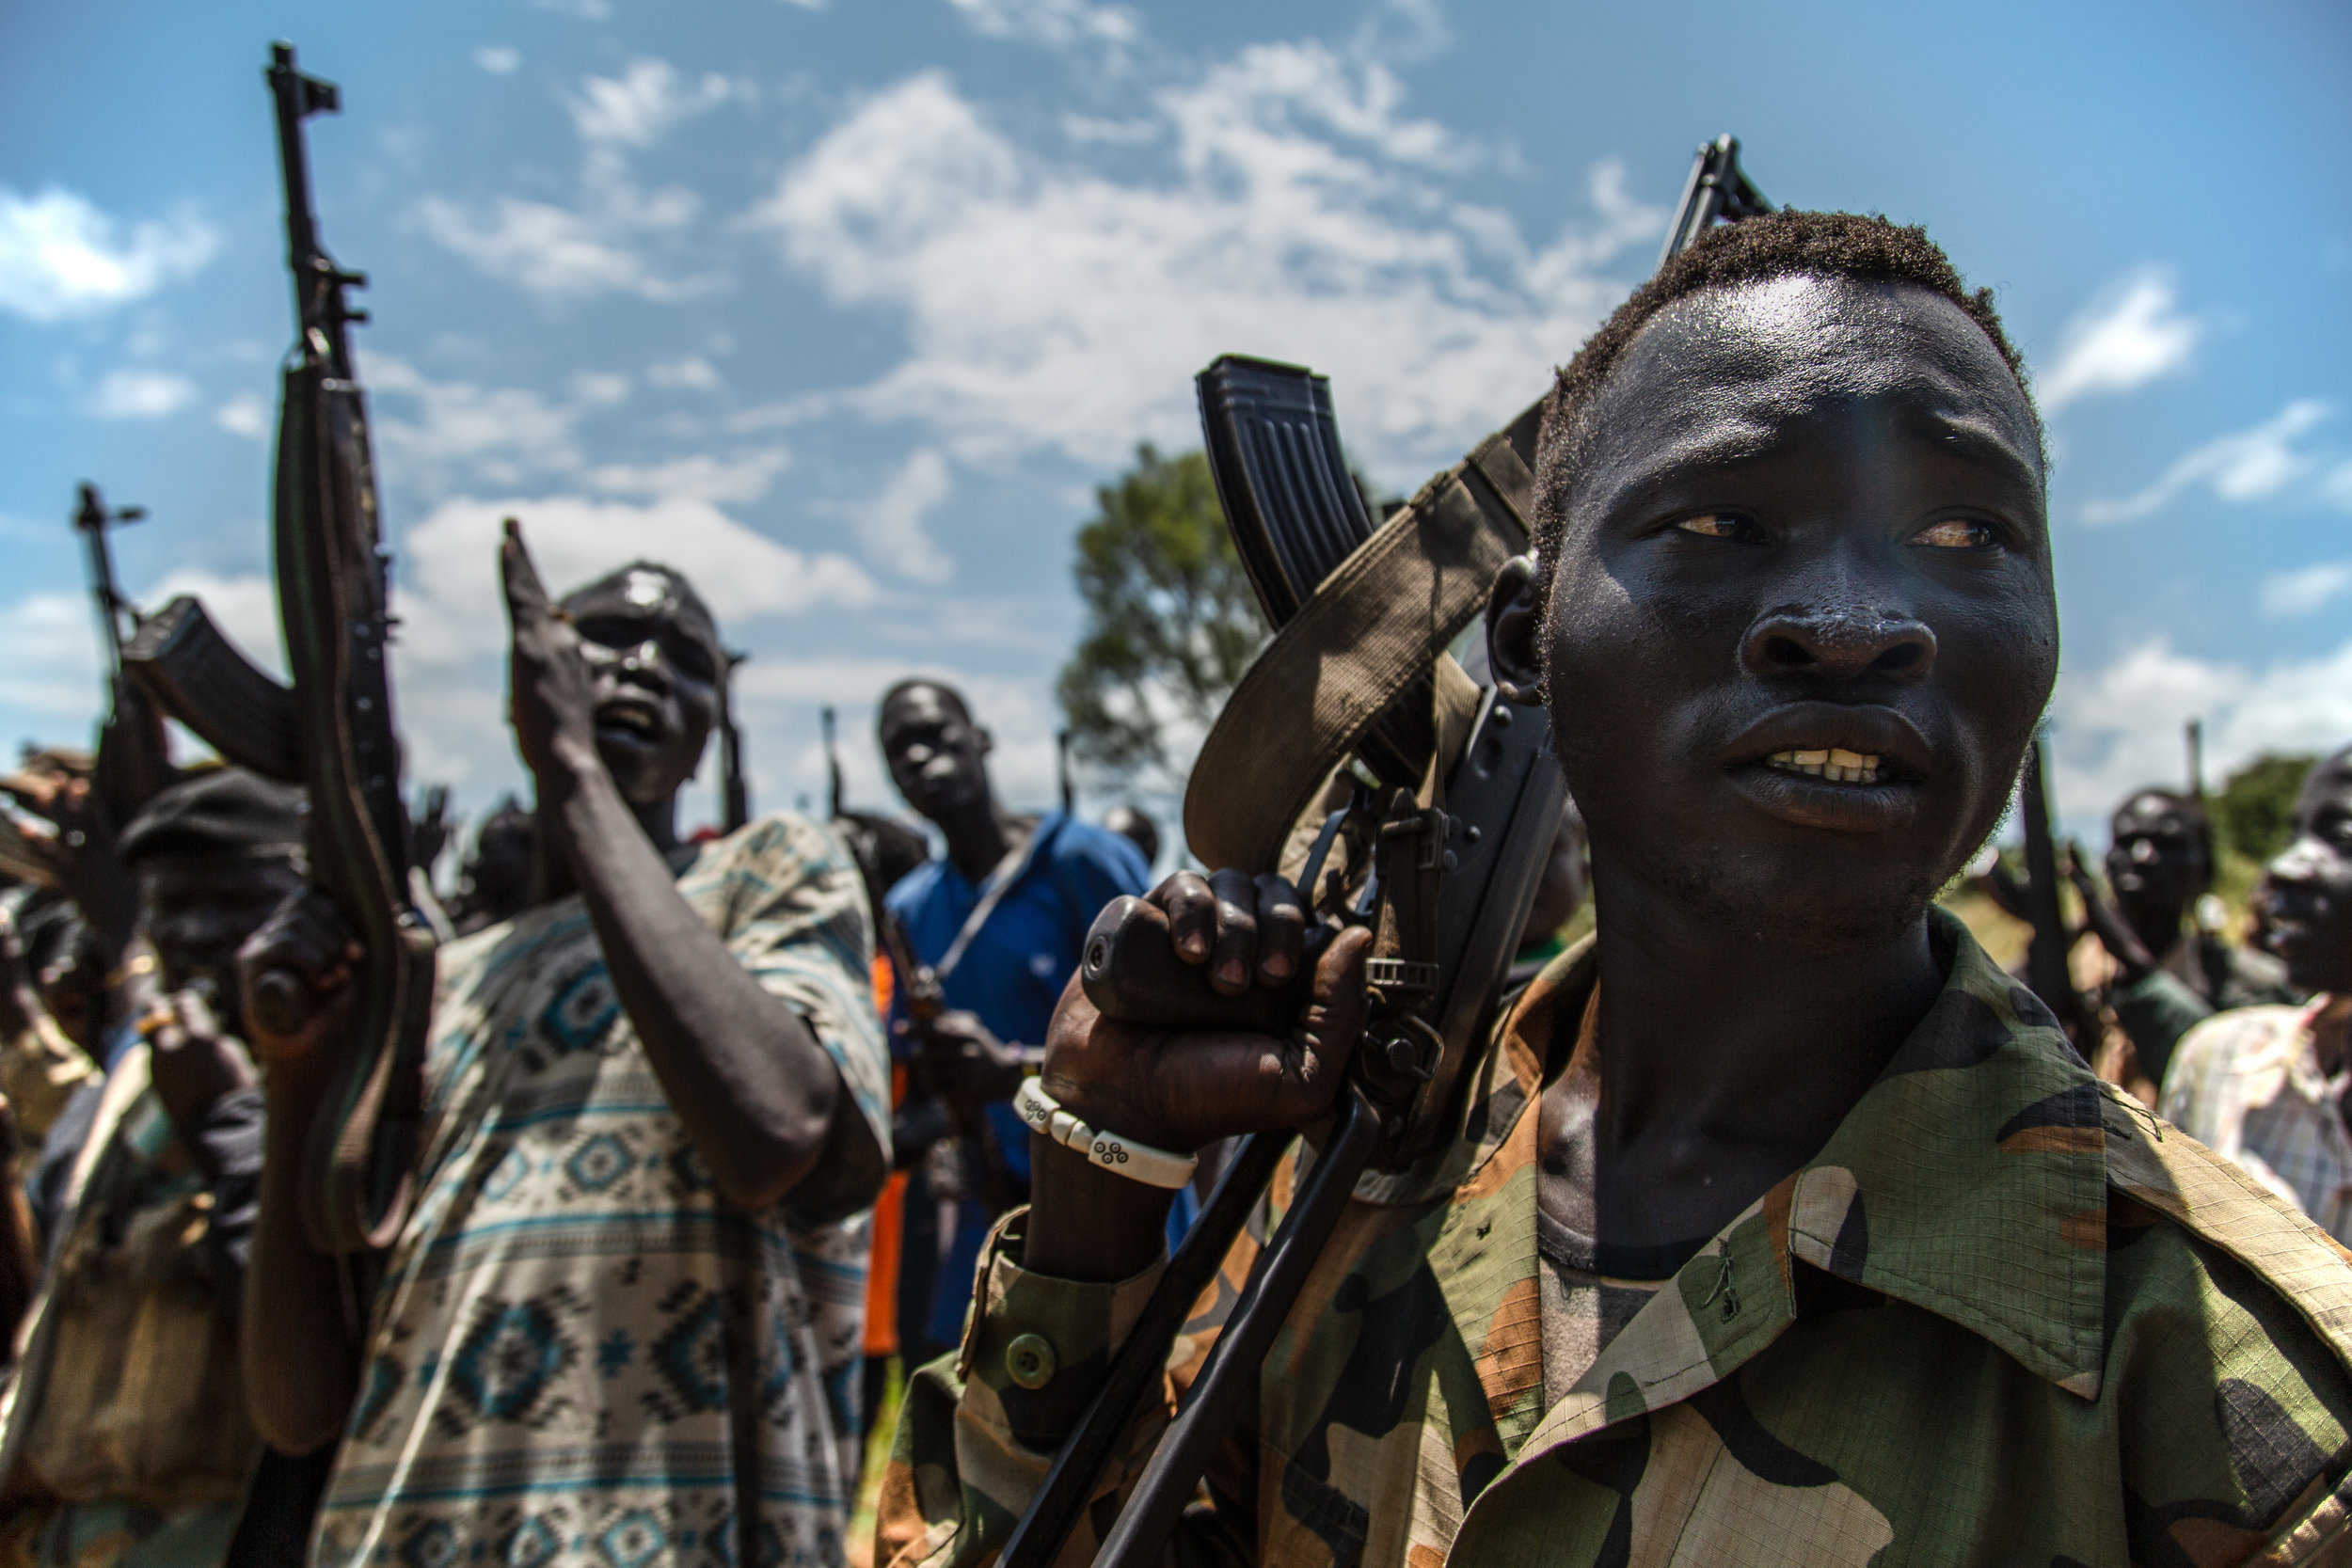 Fighting in South Sudan continues despite peace agreement // Embed with SPLA-IO rebels. // AFP 09.2018